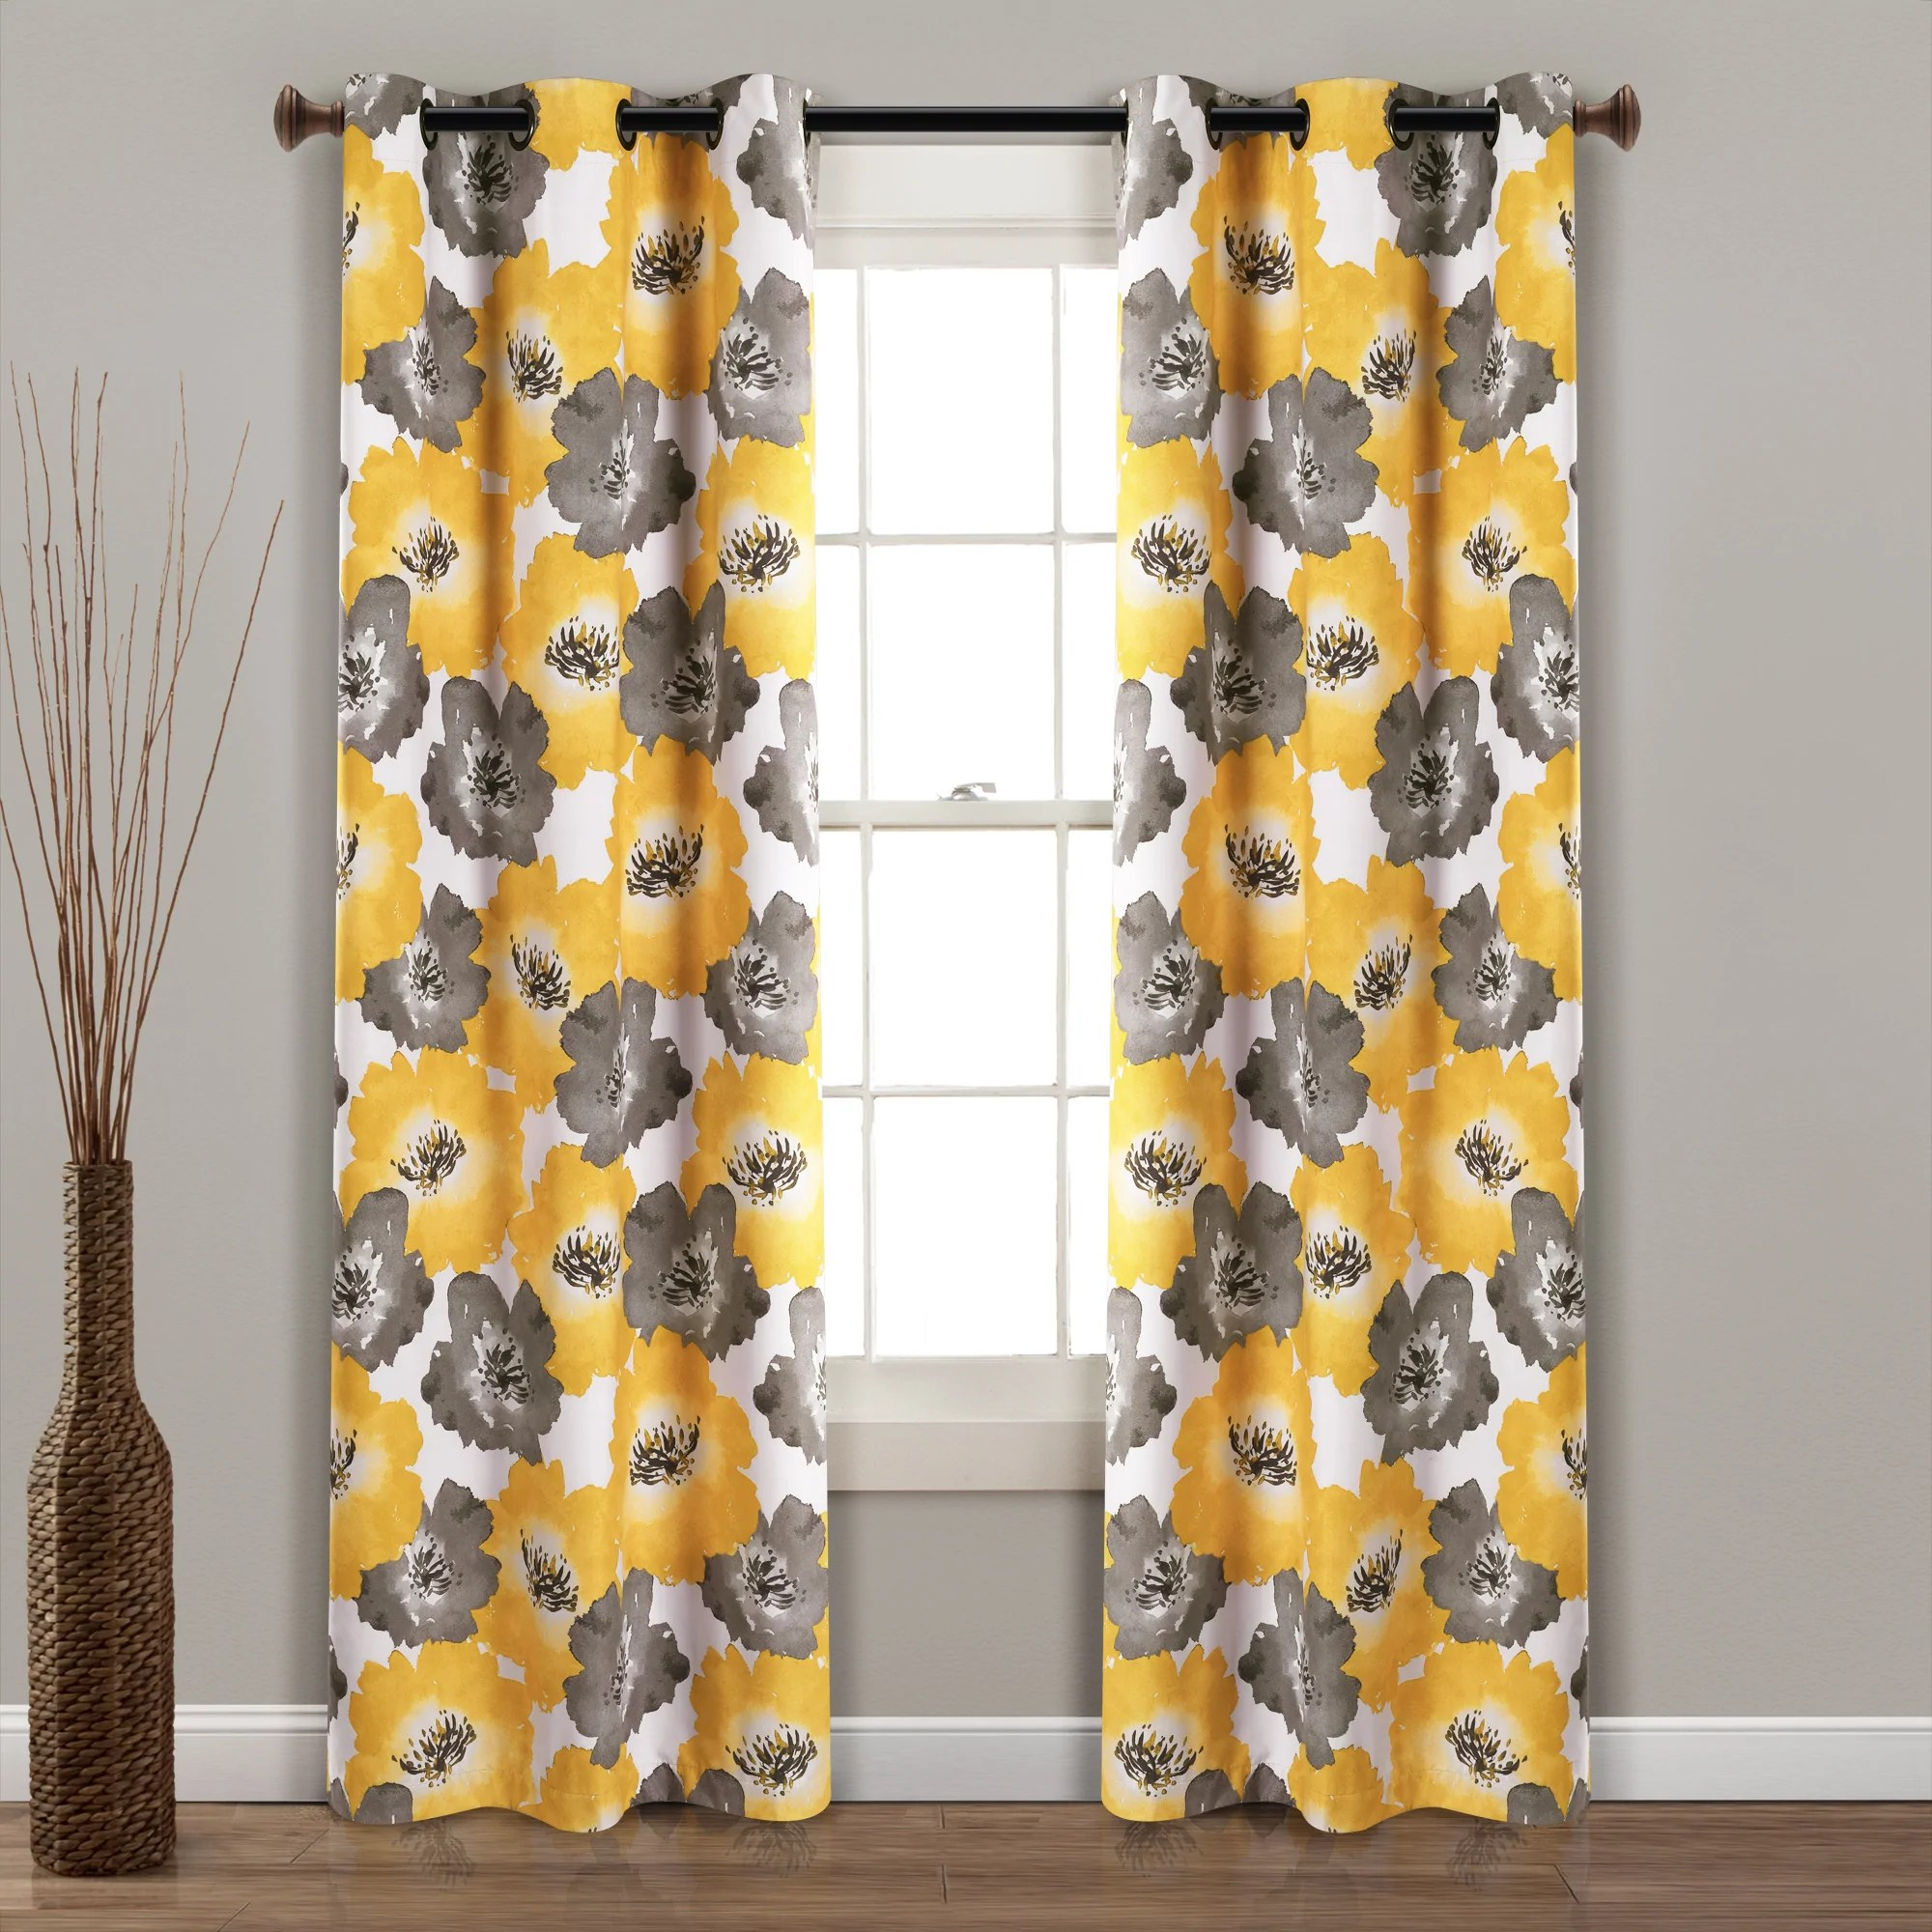 julie floral insulated grommet blackout window curtain panel set 84 x 38 yellow gray